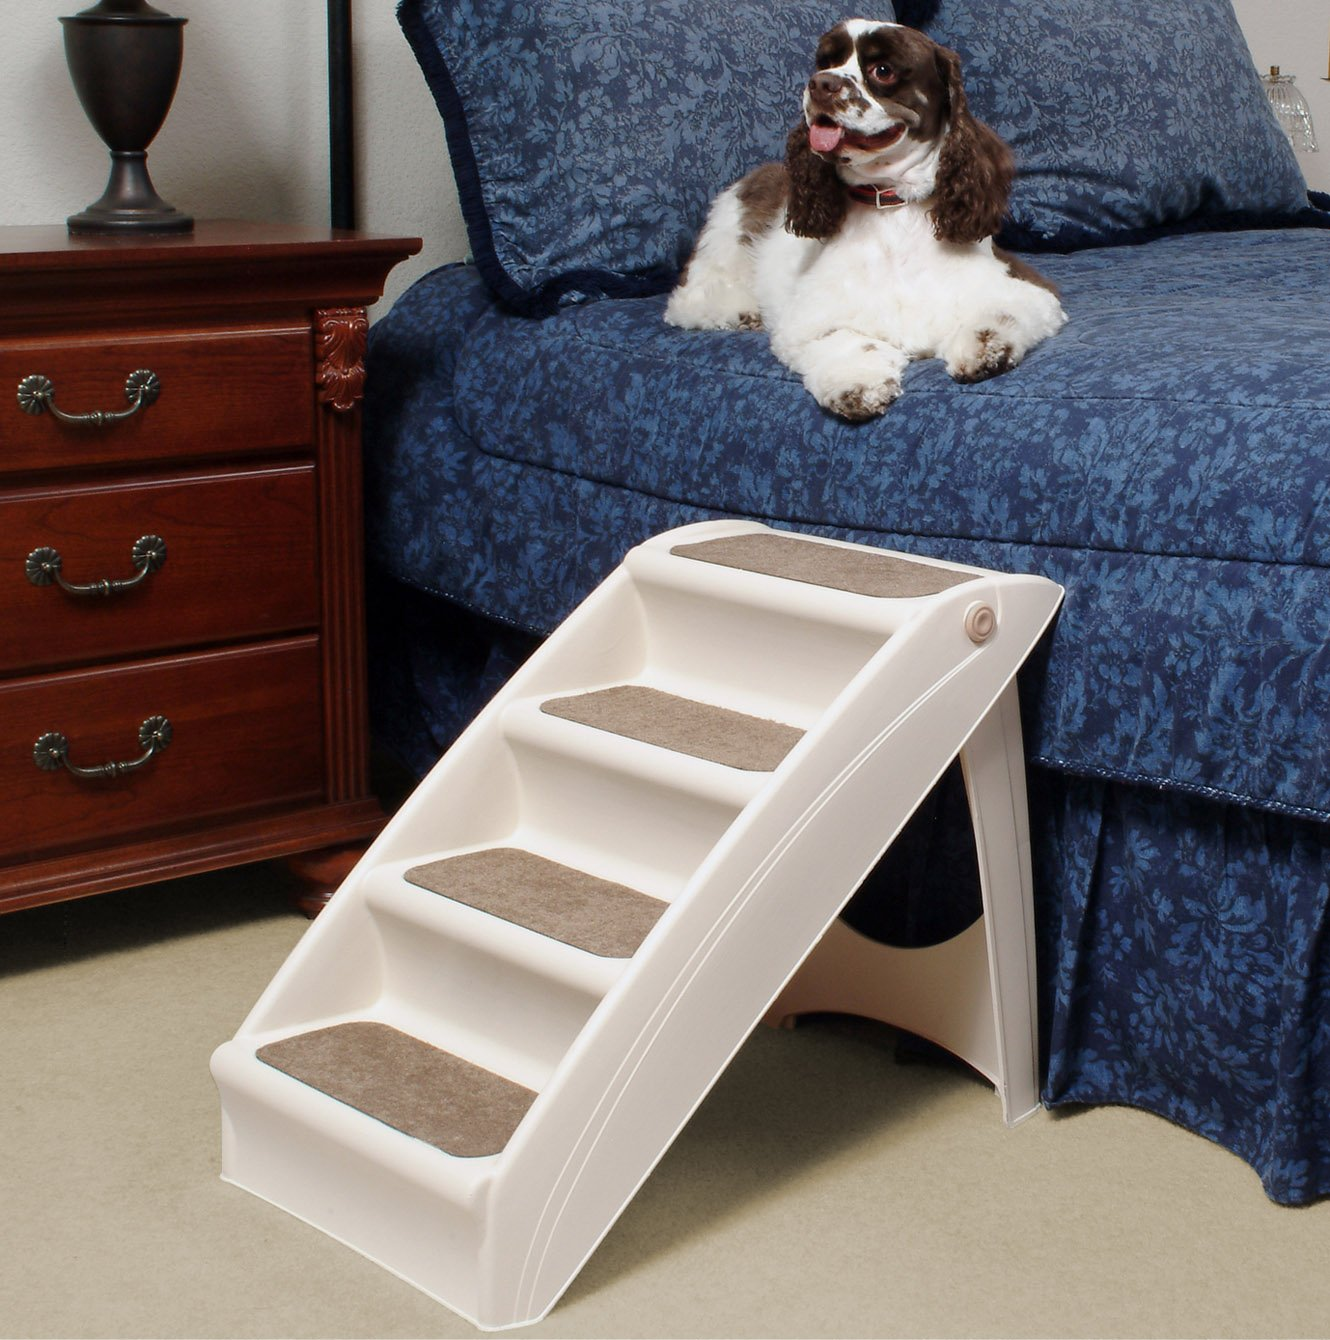 dog build pet for diy animal high stairs colors bedroom australia likable plans steps planet doggy tall and wooden collapsible com beds bed